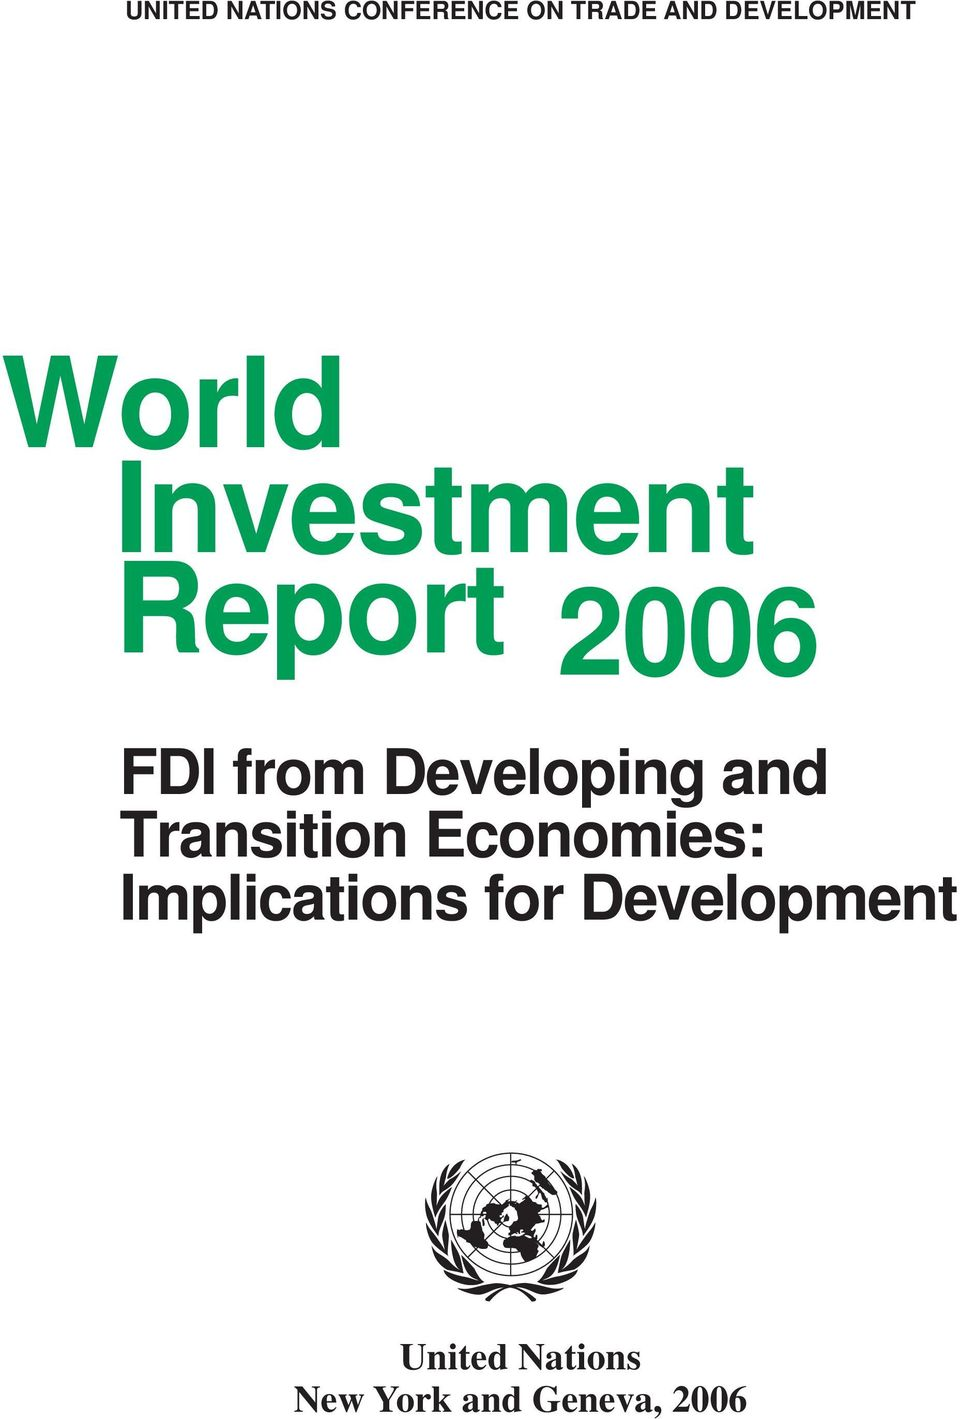 from Developing and Transition Economies: